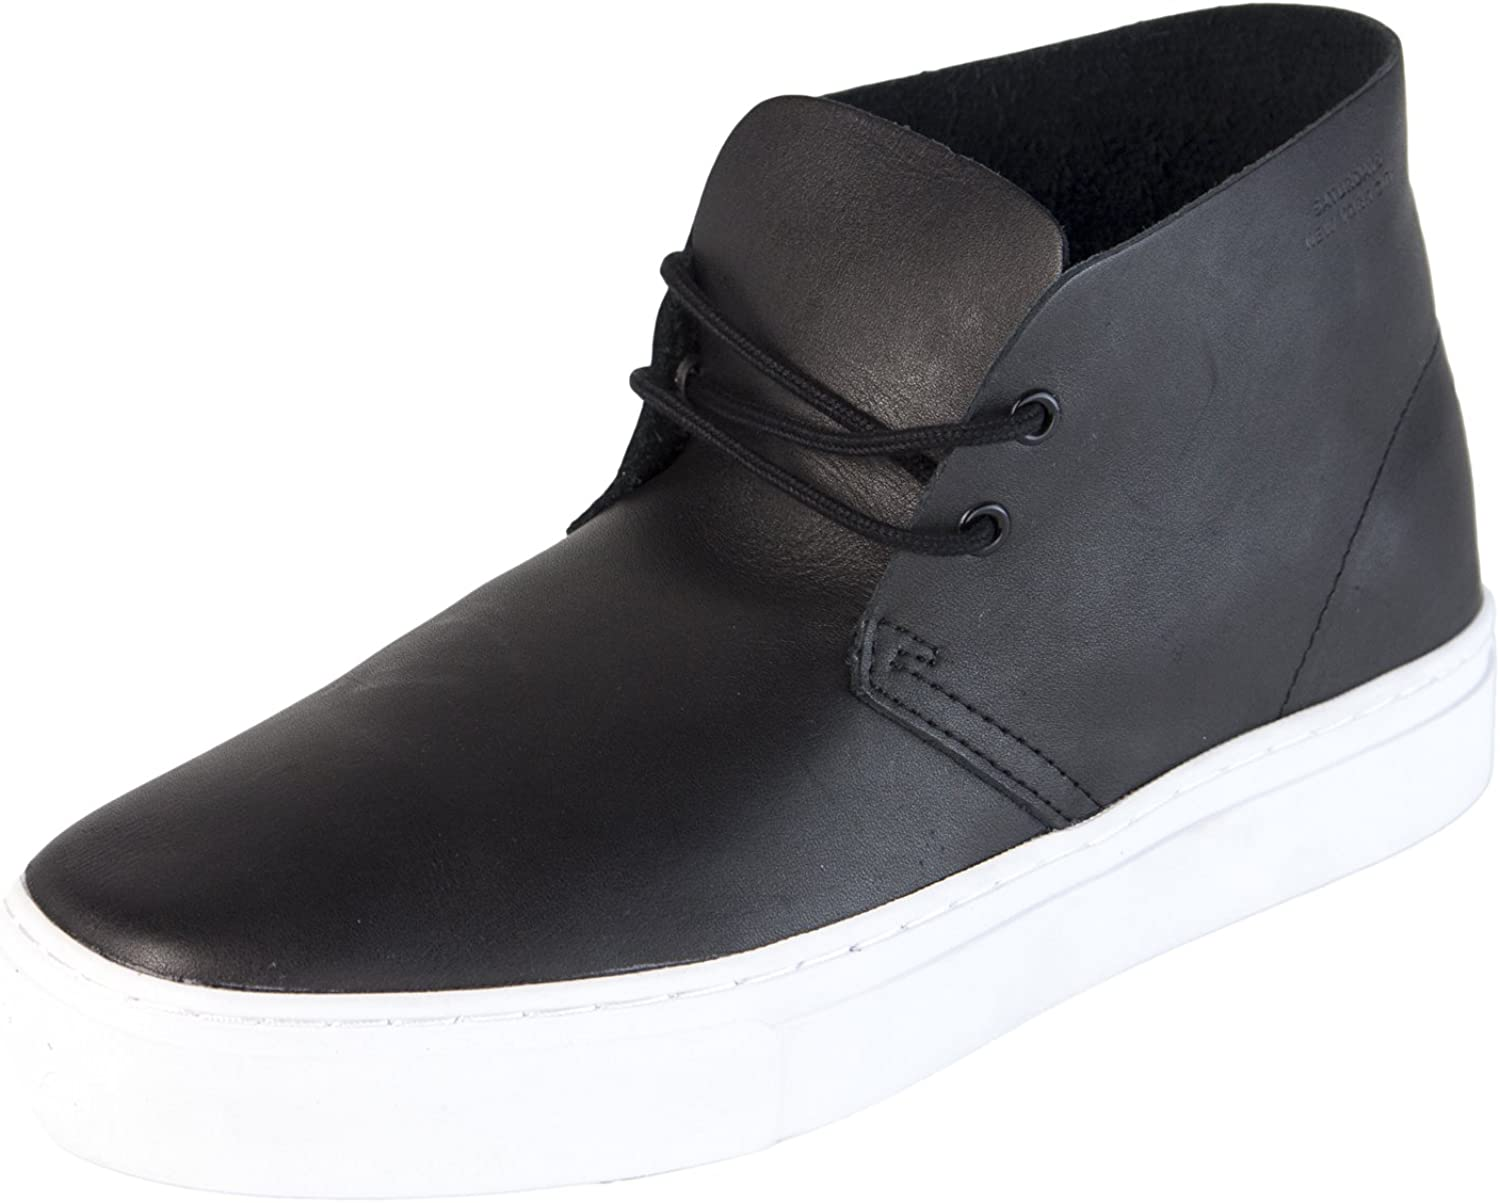 Saturdays NYC Men's Damien Leather Boots